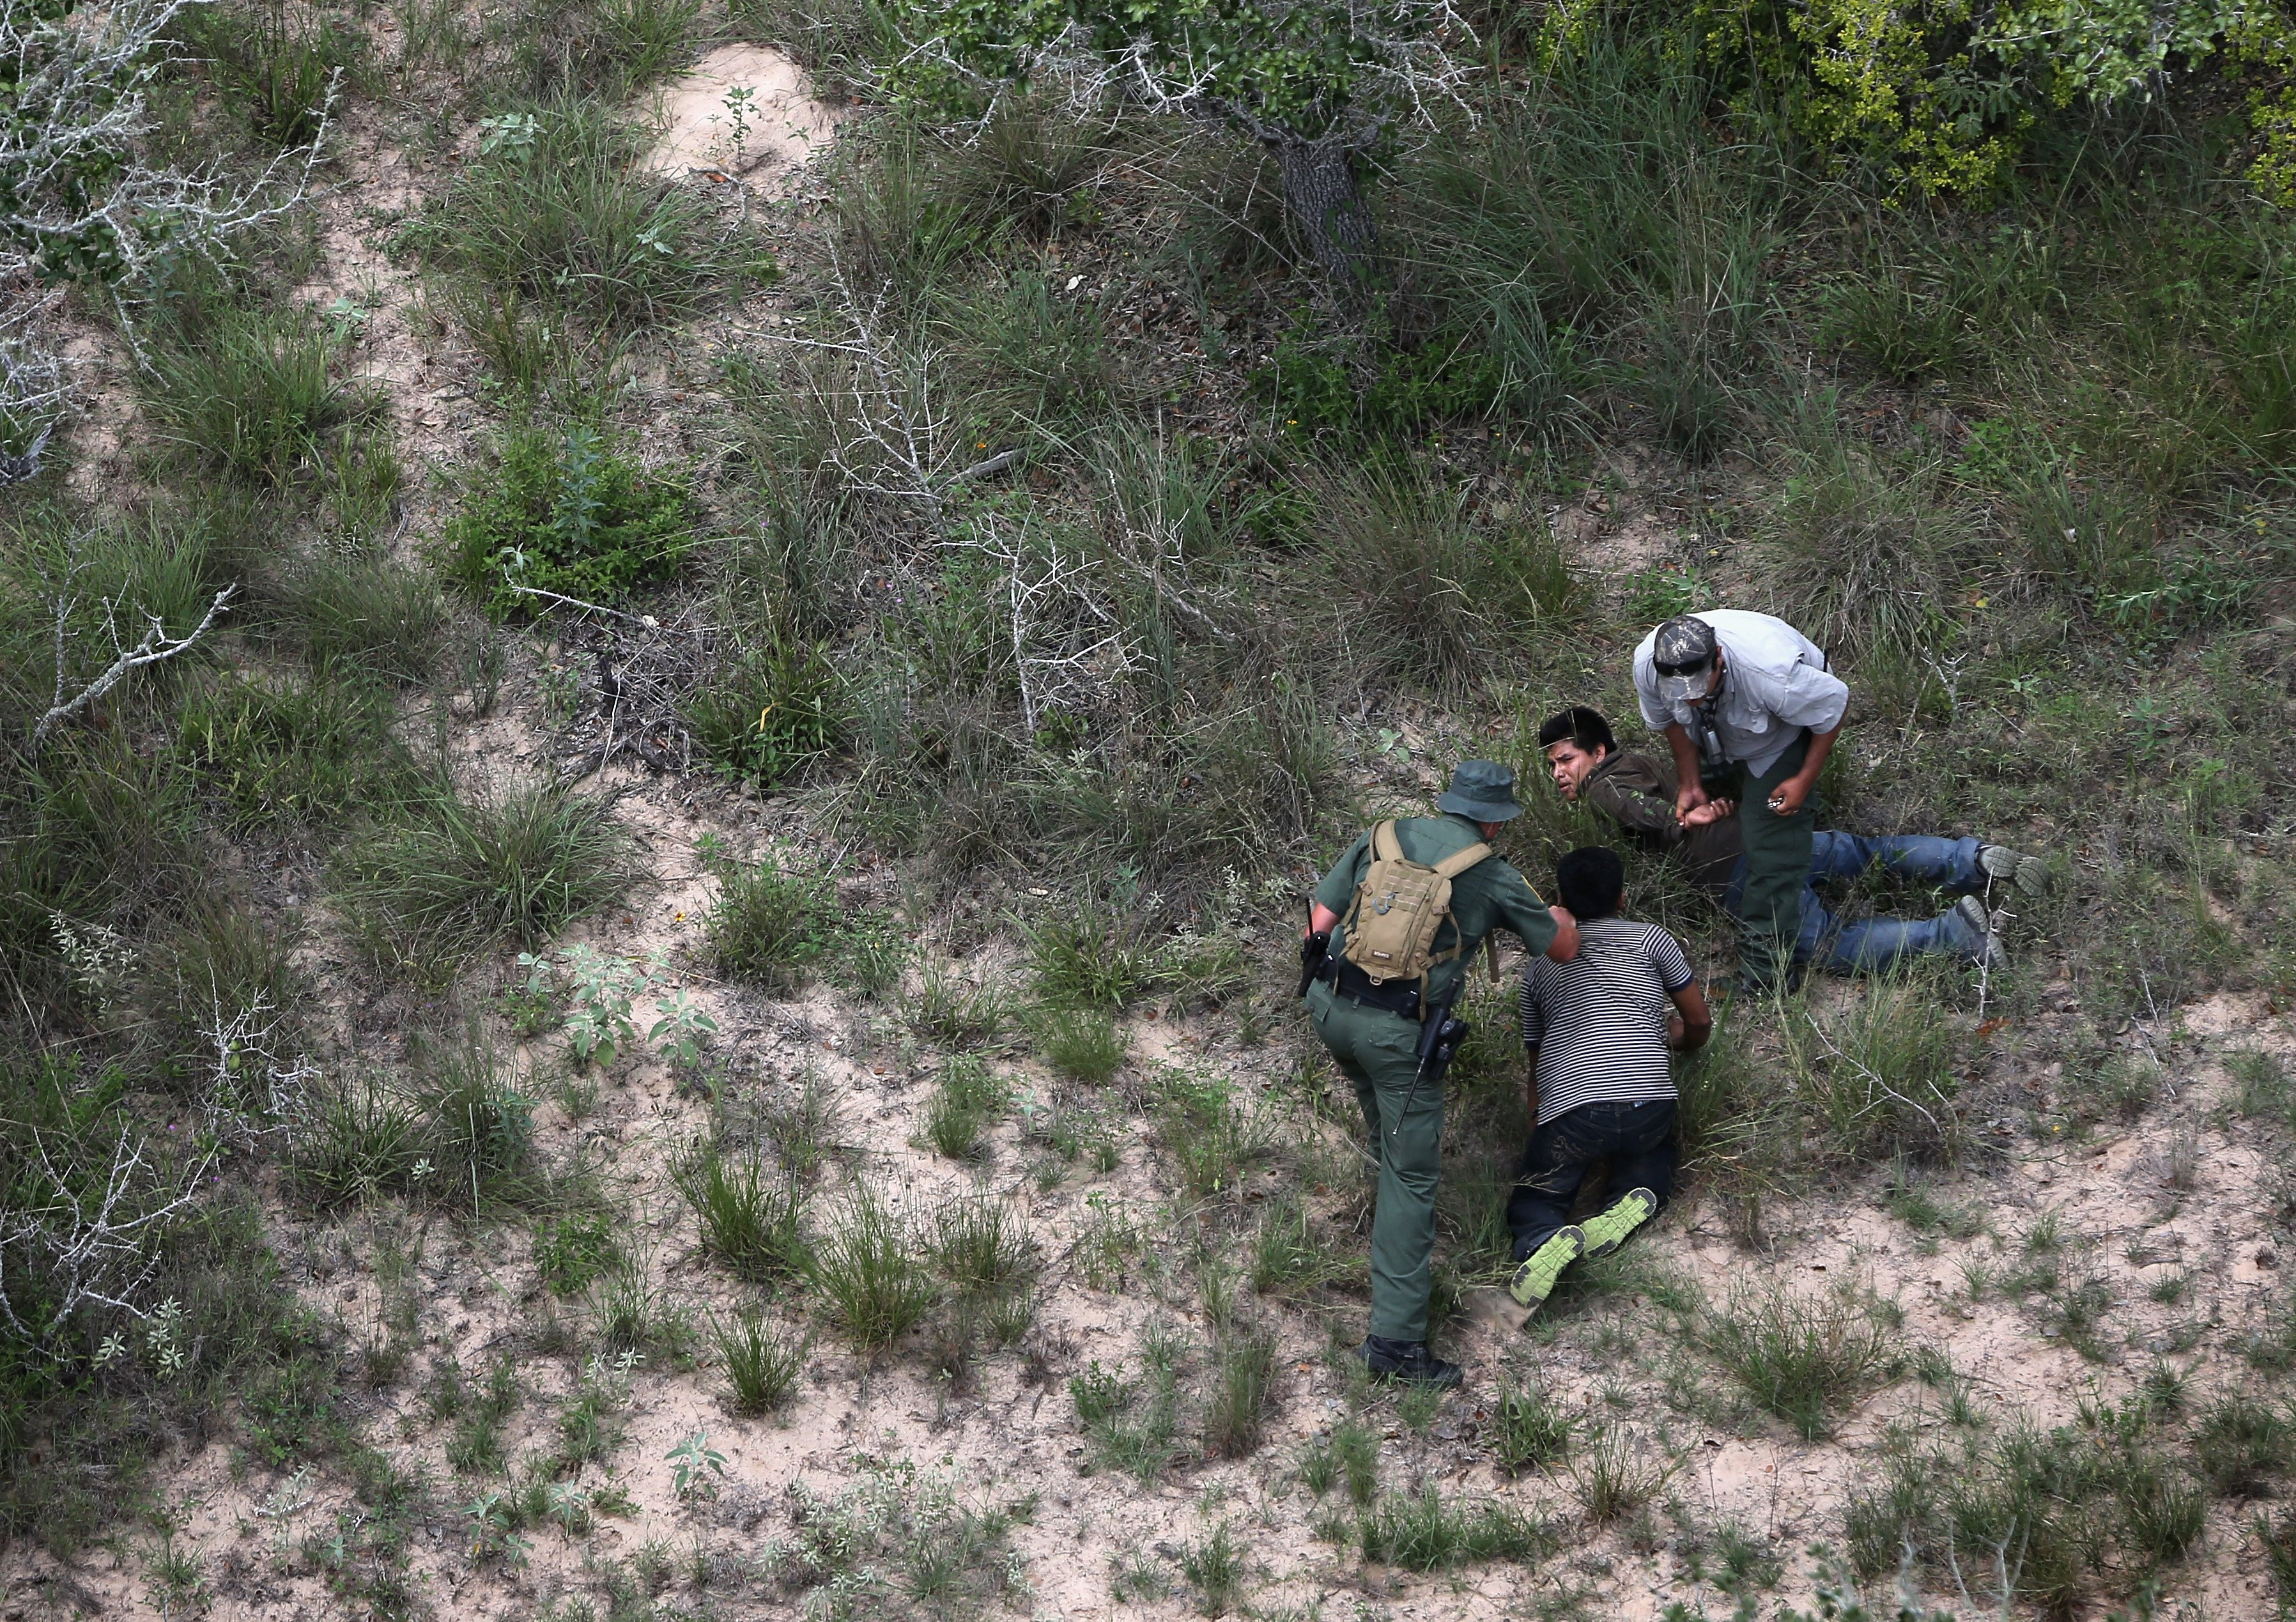 U.S. Border Patrol agents detain undocumented immigrants some 60 miles north of the U.S.-Mexico border near Falfurrias, Texas on July 23, 2014.